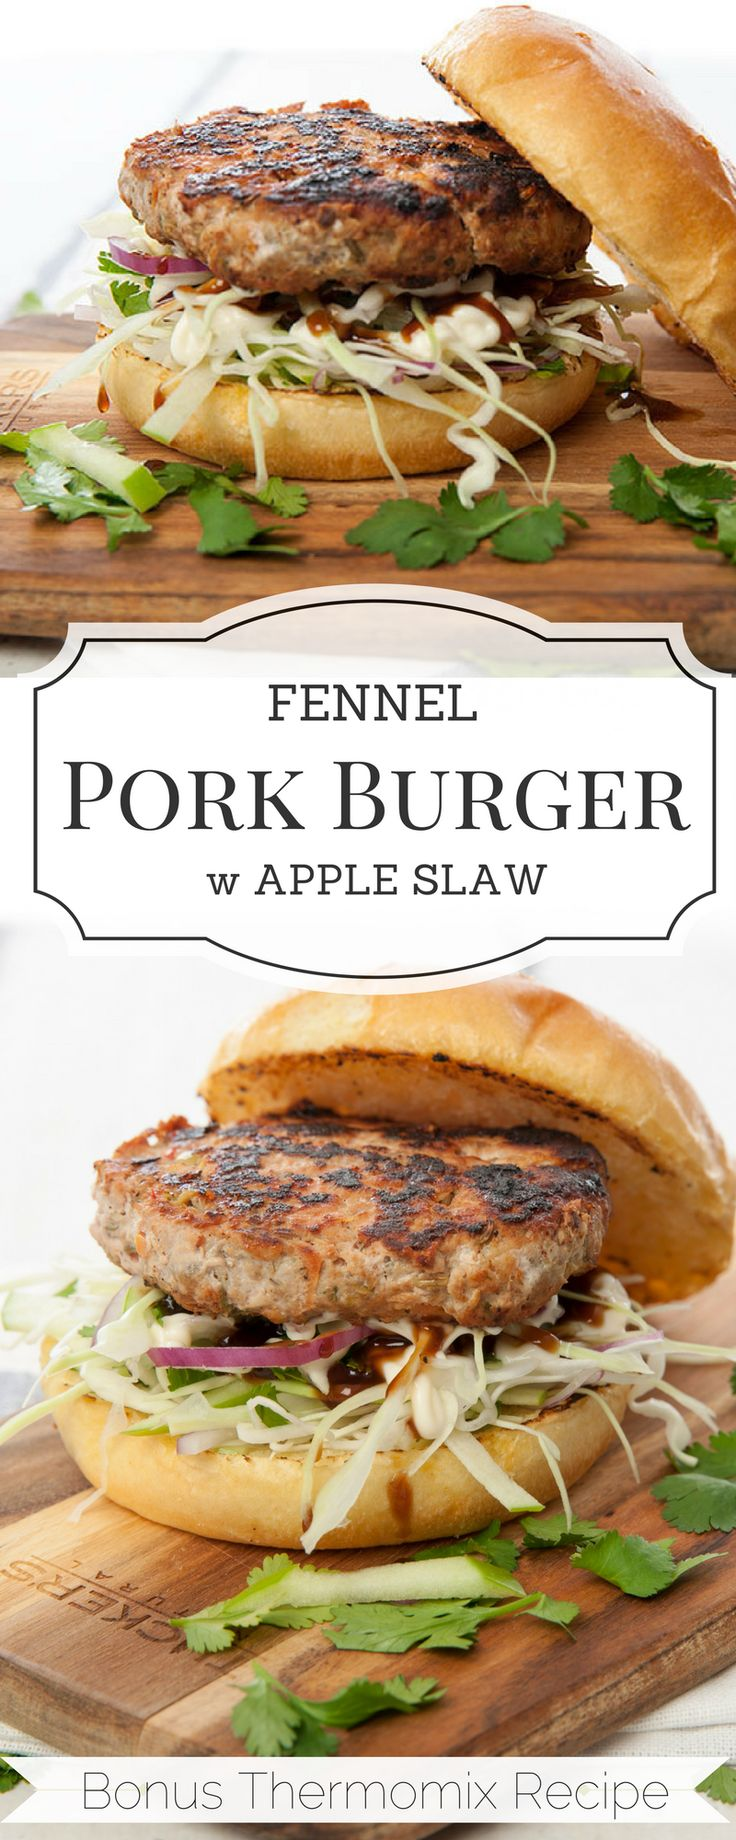 Delicious Fennel & Pork Burgers make the perfect healthy week night meal. Loads of hidden vegetables for fussy eaters. Thermomix and conventional recipe included. #burger #thermomix #porkburger